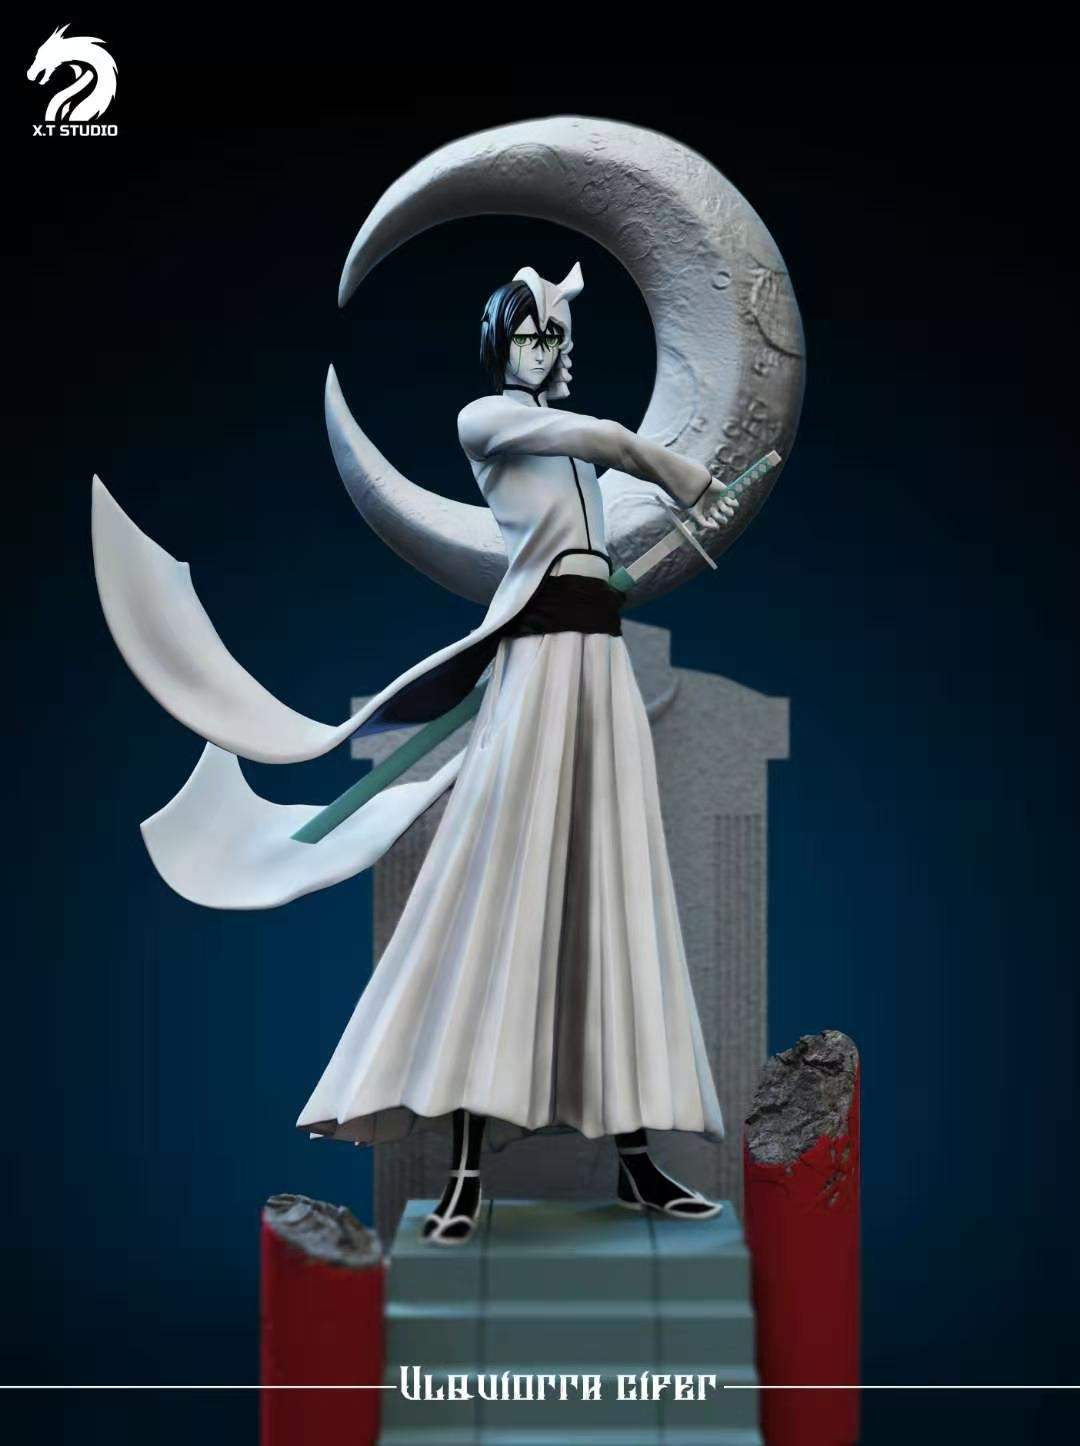 Normal Ulquiorra Cifer อุล XT Studio (มัดจำ)